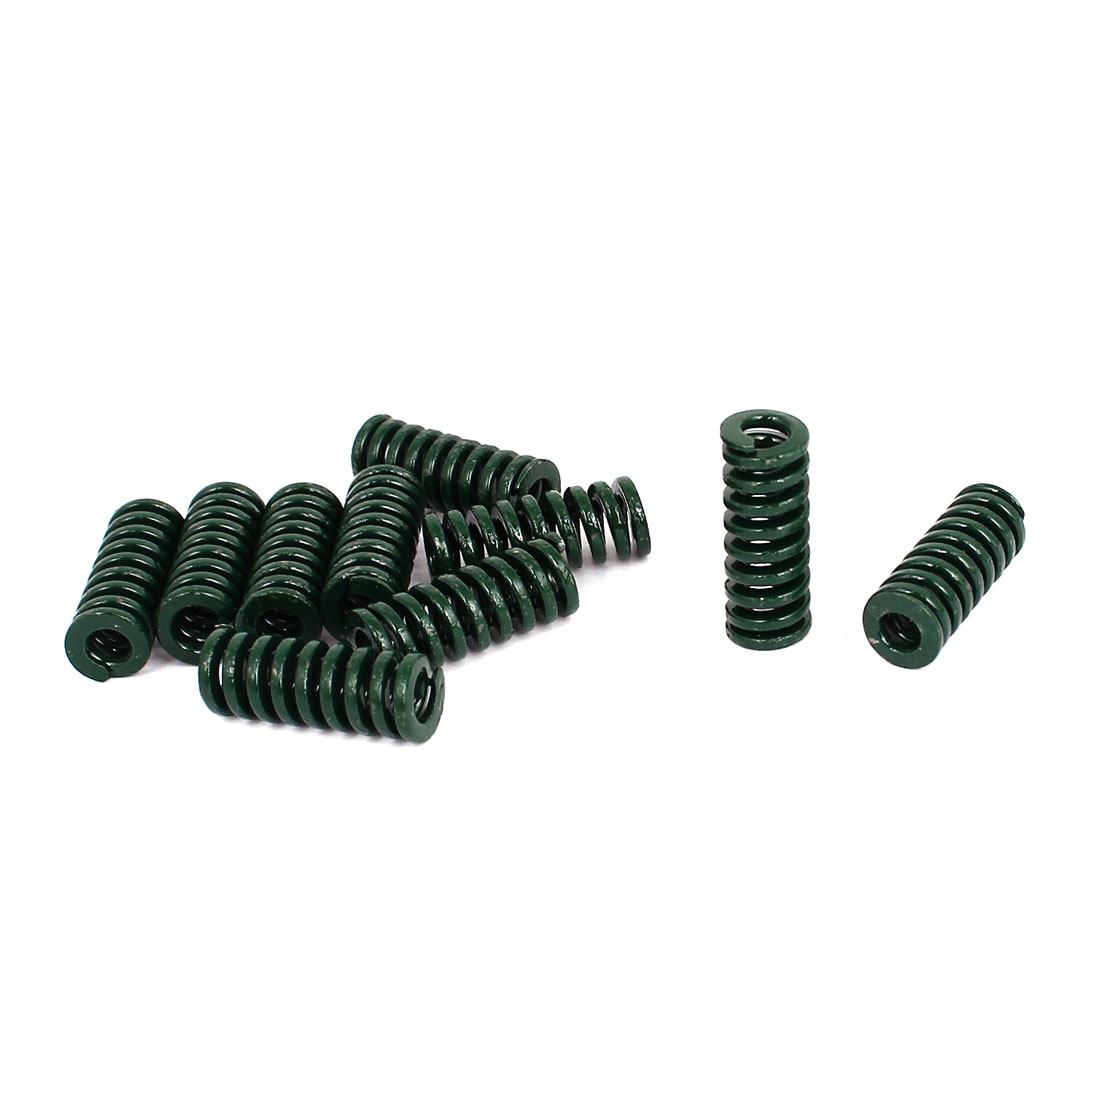 UXCELL 35Mm X 10Mm 5Mm Metal Tubular Section Mould Die Compression Spring 10Pcs